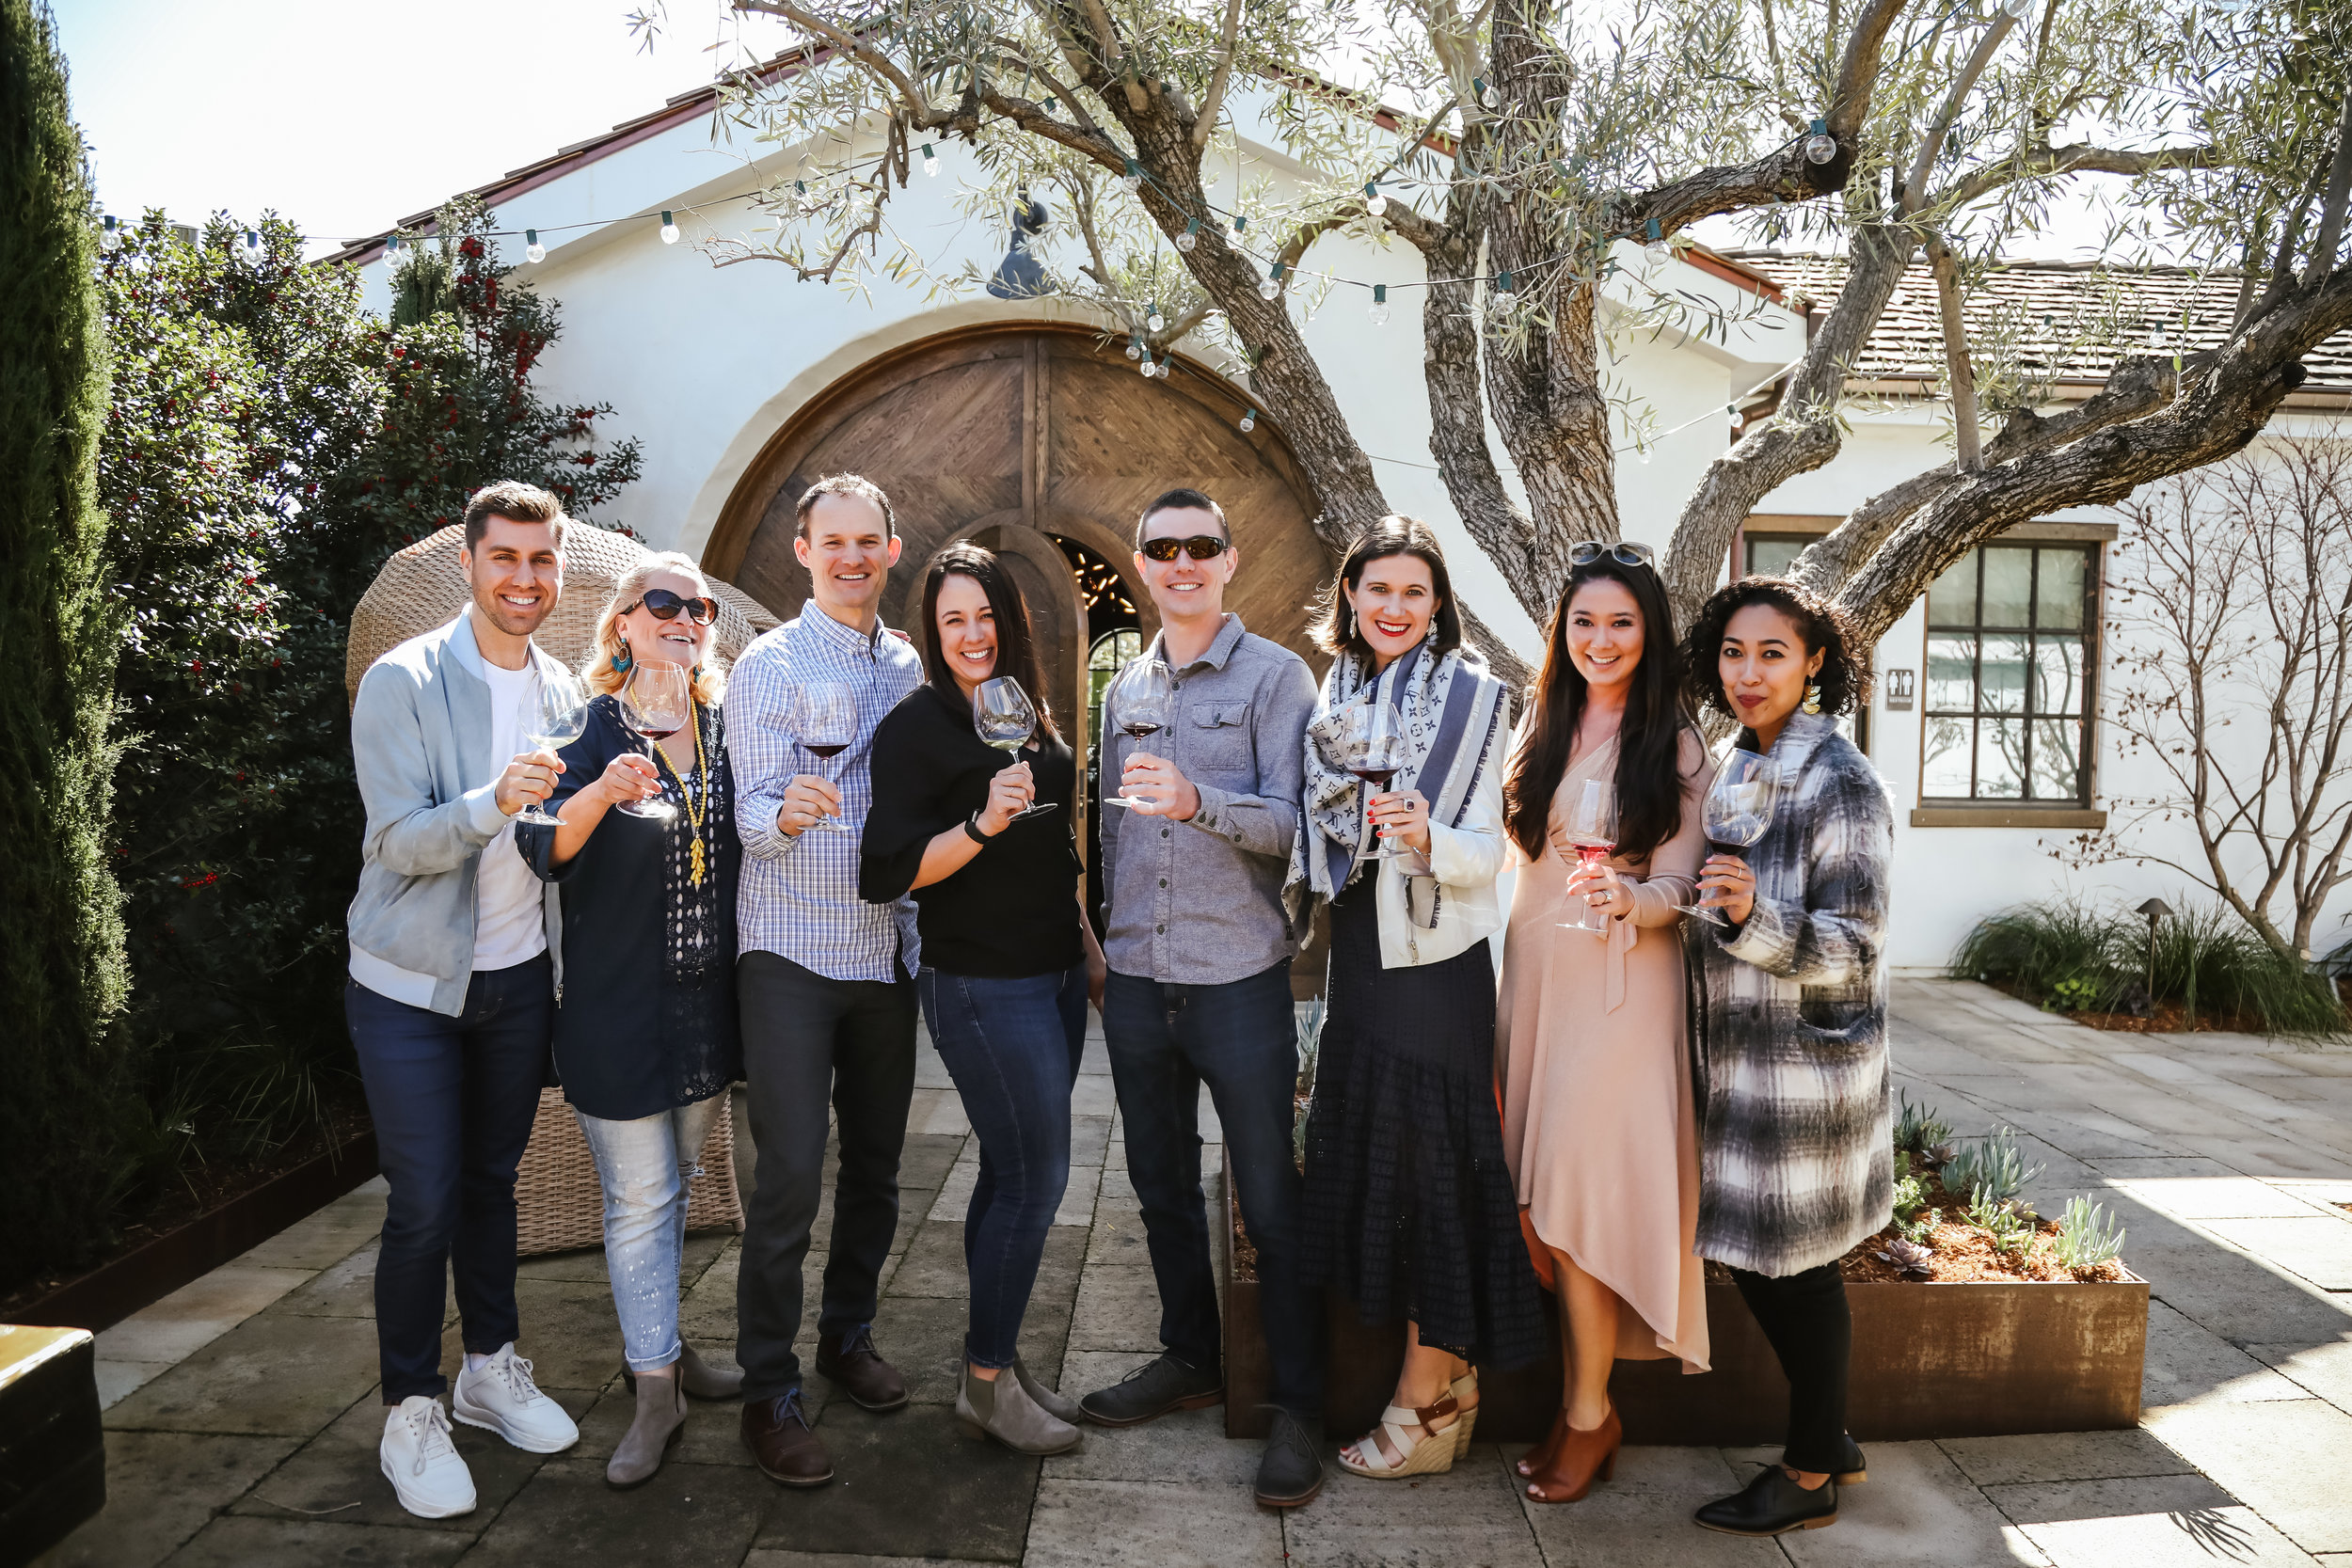 Cheers to fabulous Winemaker Ryan Prichard of Three Sticks Wines and our lovely afternoon sharing the stunning Three Sticks Wines and adobe with our blogger guests.